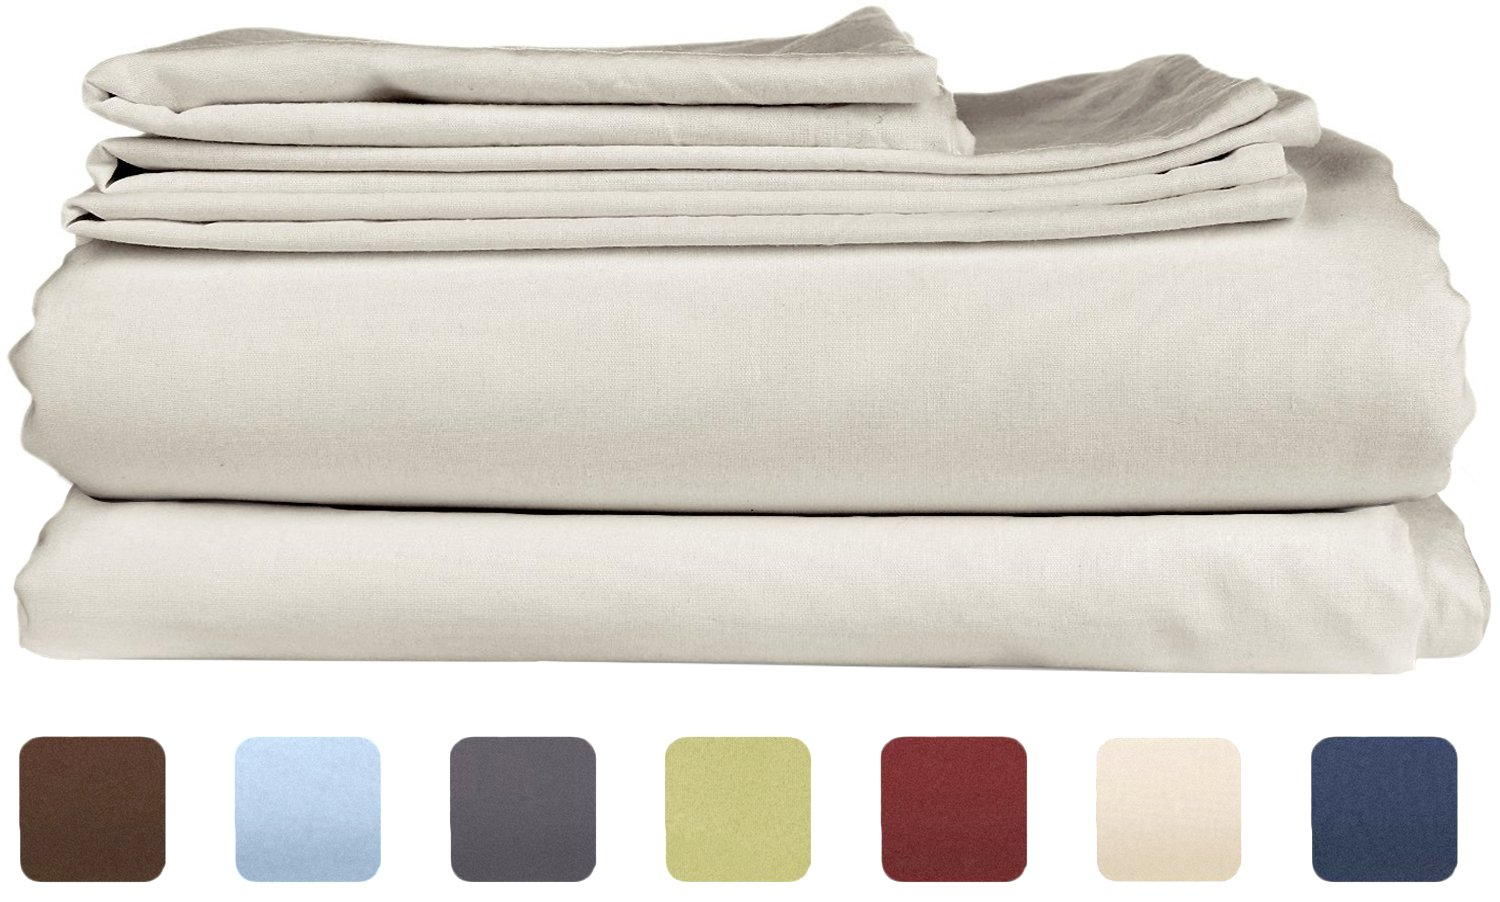 King Size Sheet Set - 6 Piece Set - Hotel Luxury Bed Sheets Gray